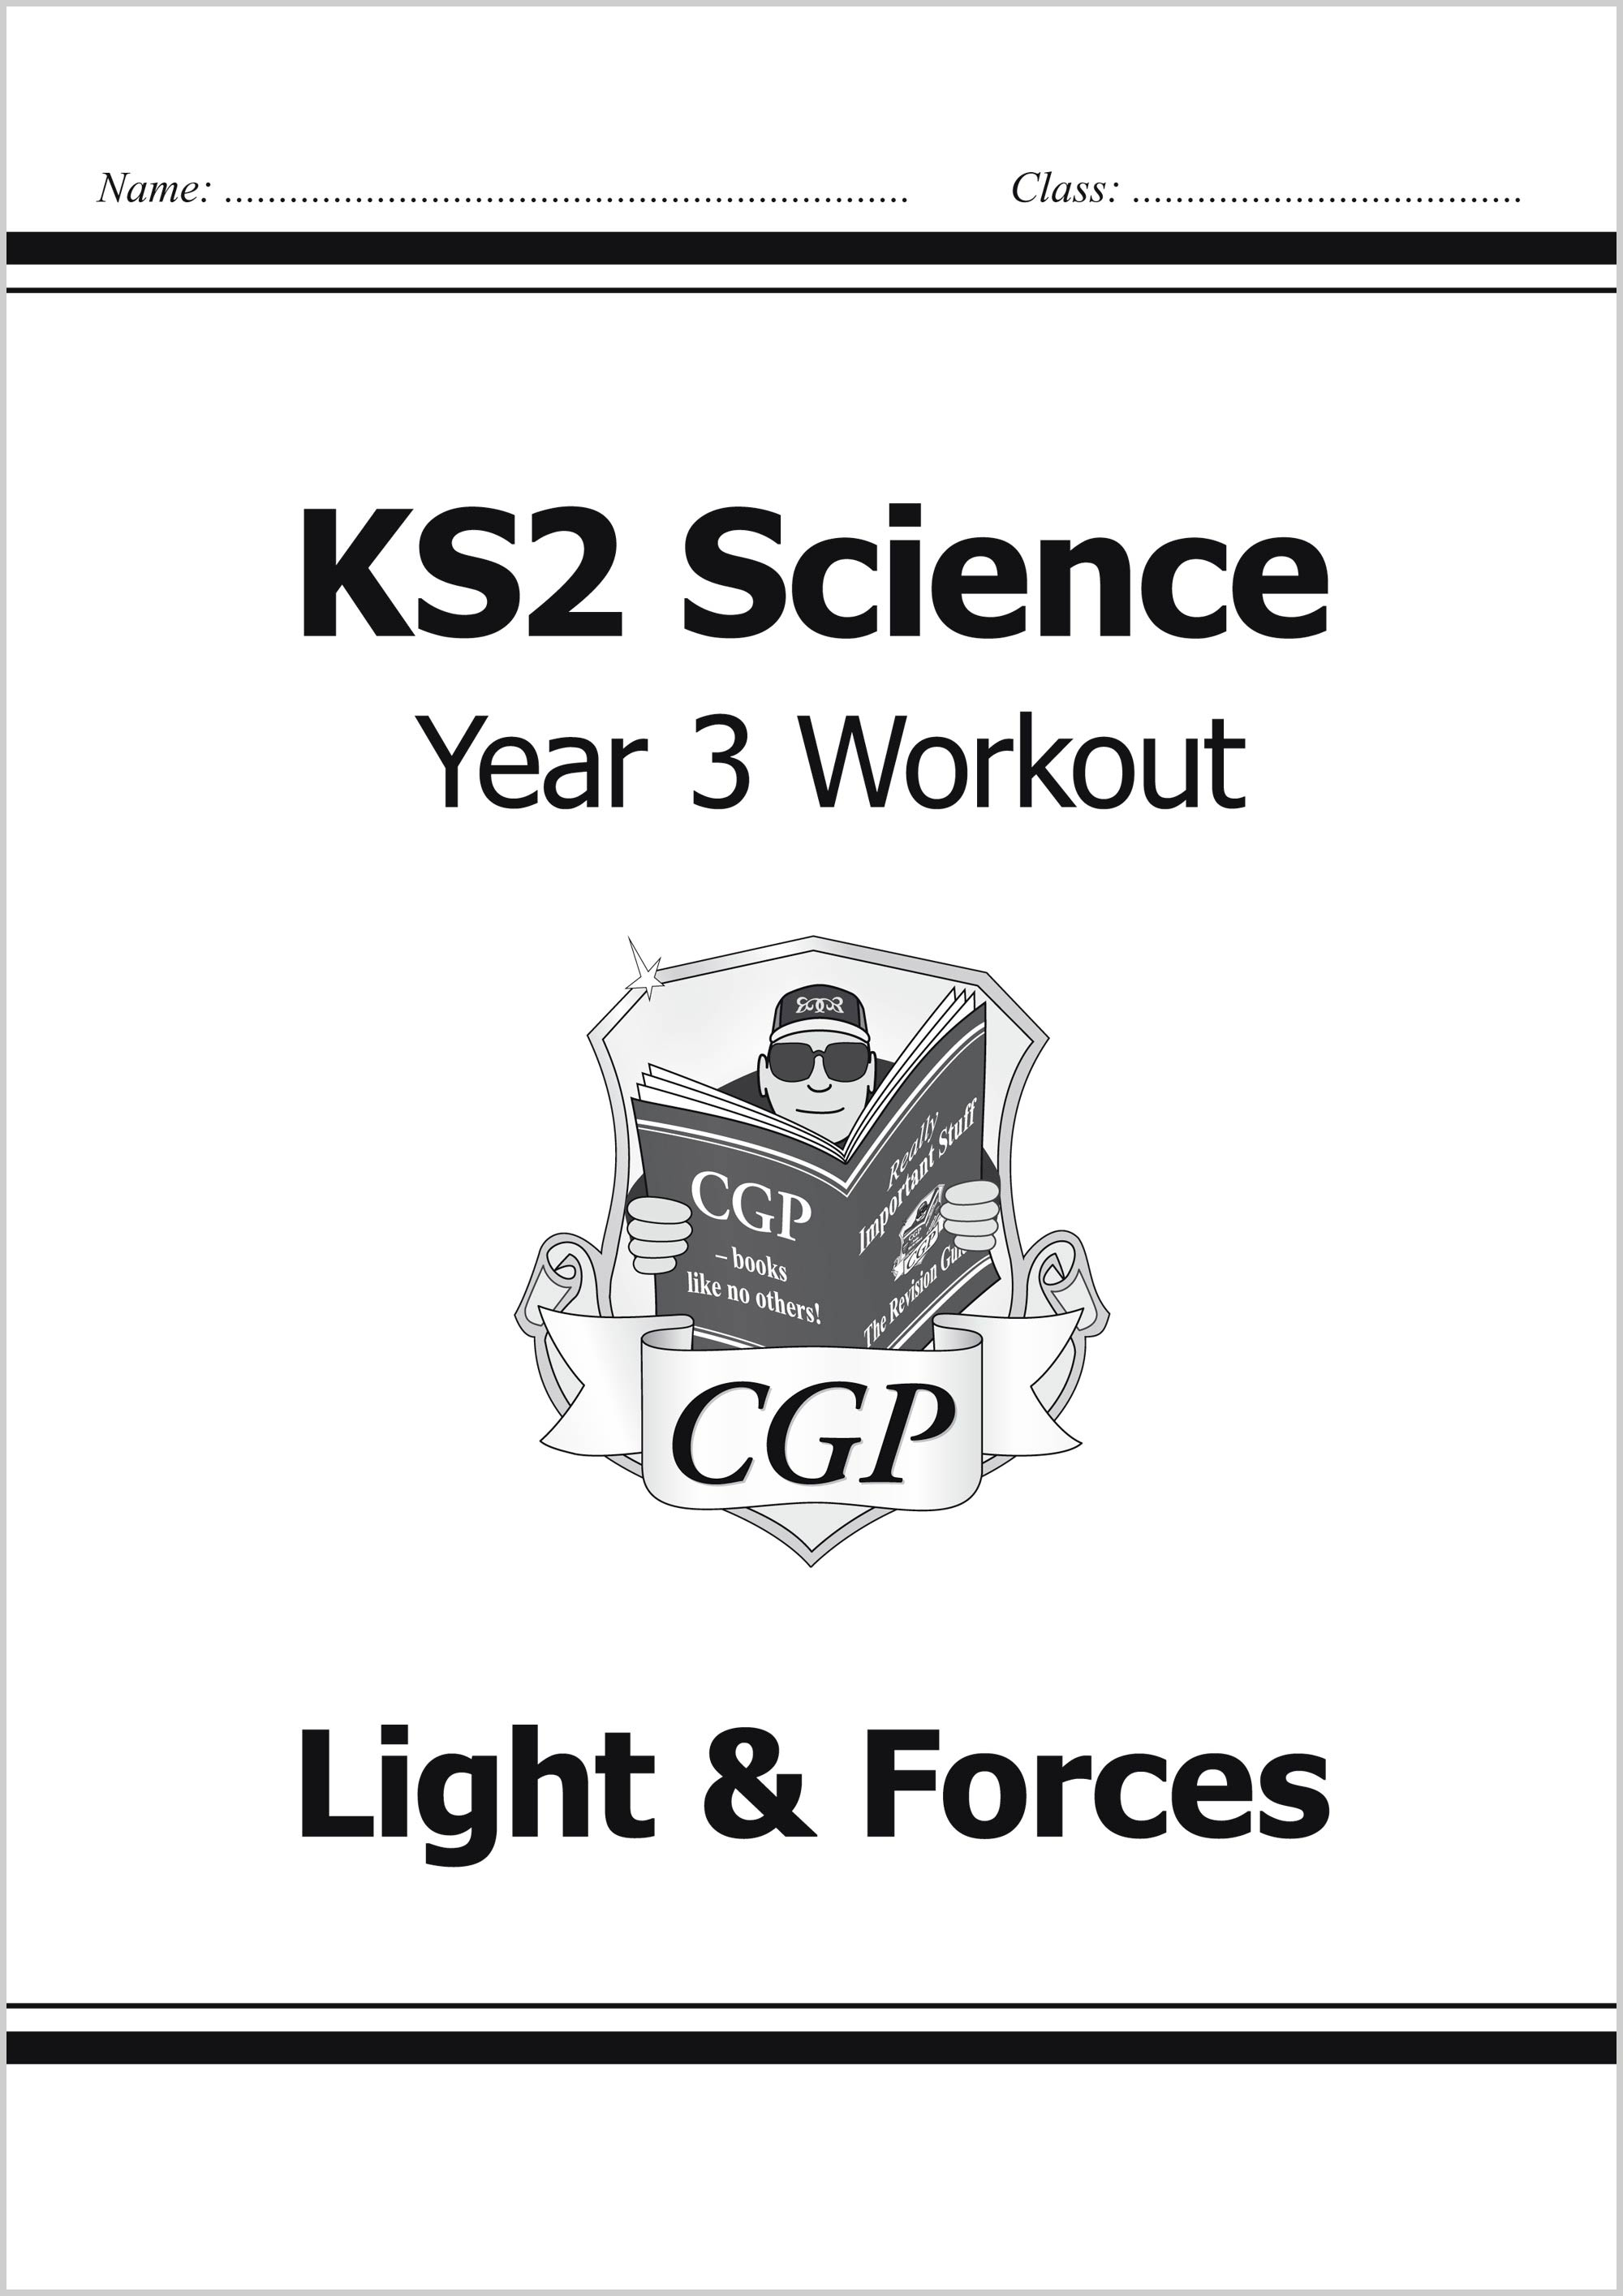 S3D22 - KS2 Science Year Three Workout: Light & Forces